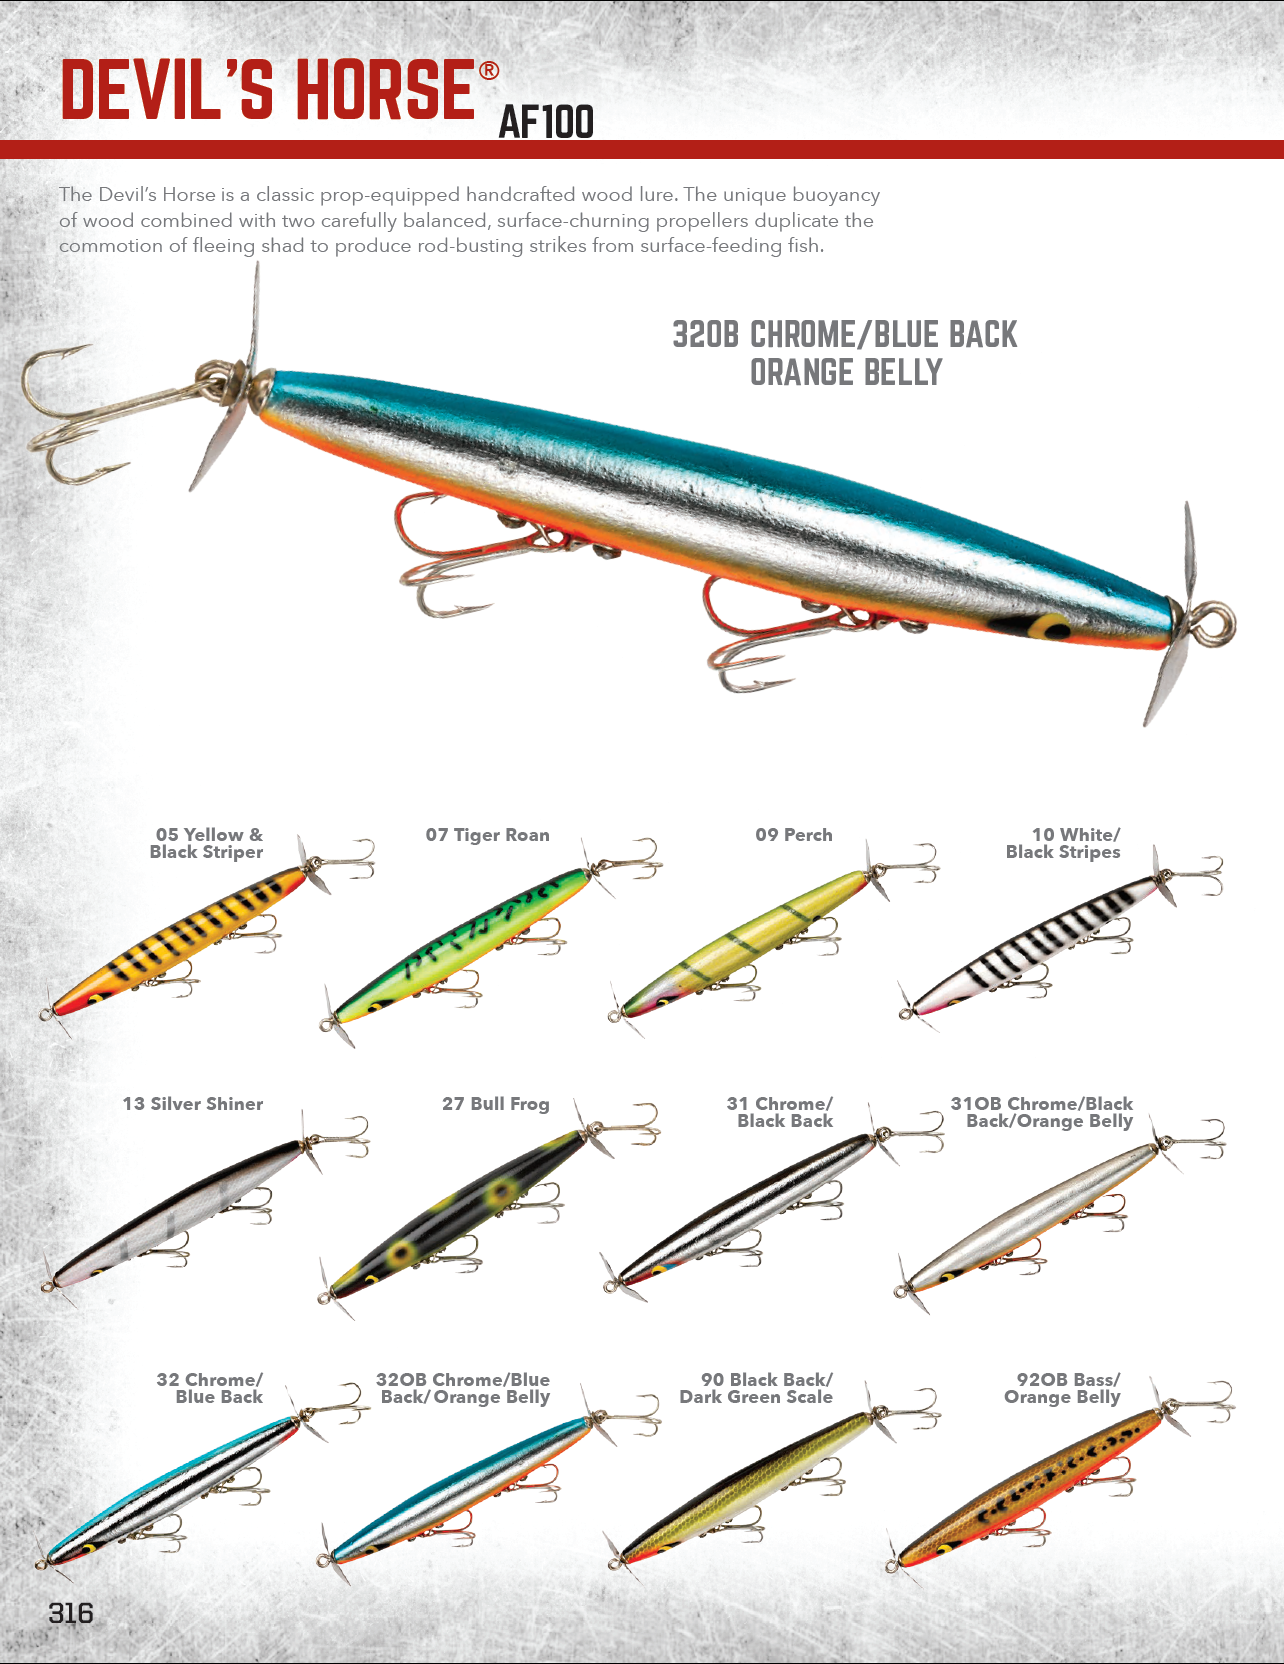 Smithwick devils horse af100 2017 color chart fishing lure color smithwick devils horse af100 2017 color chart nvjuhfo Image collections